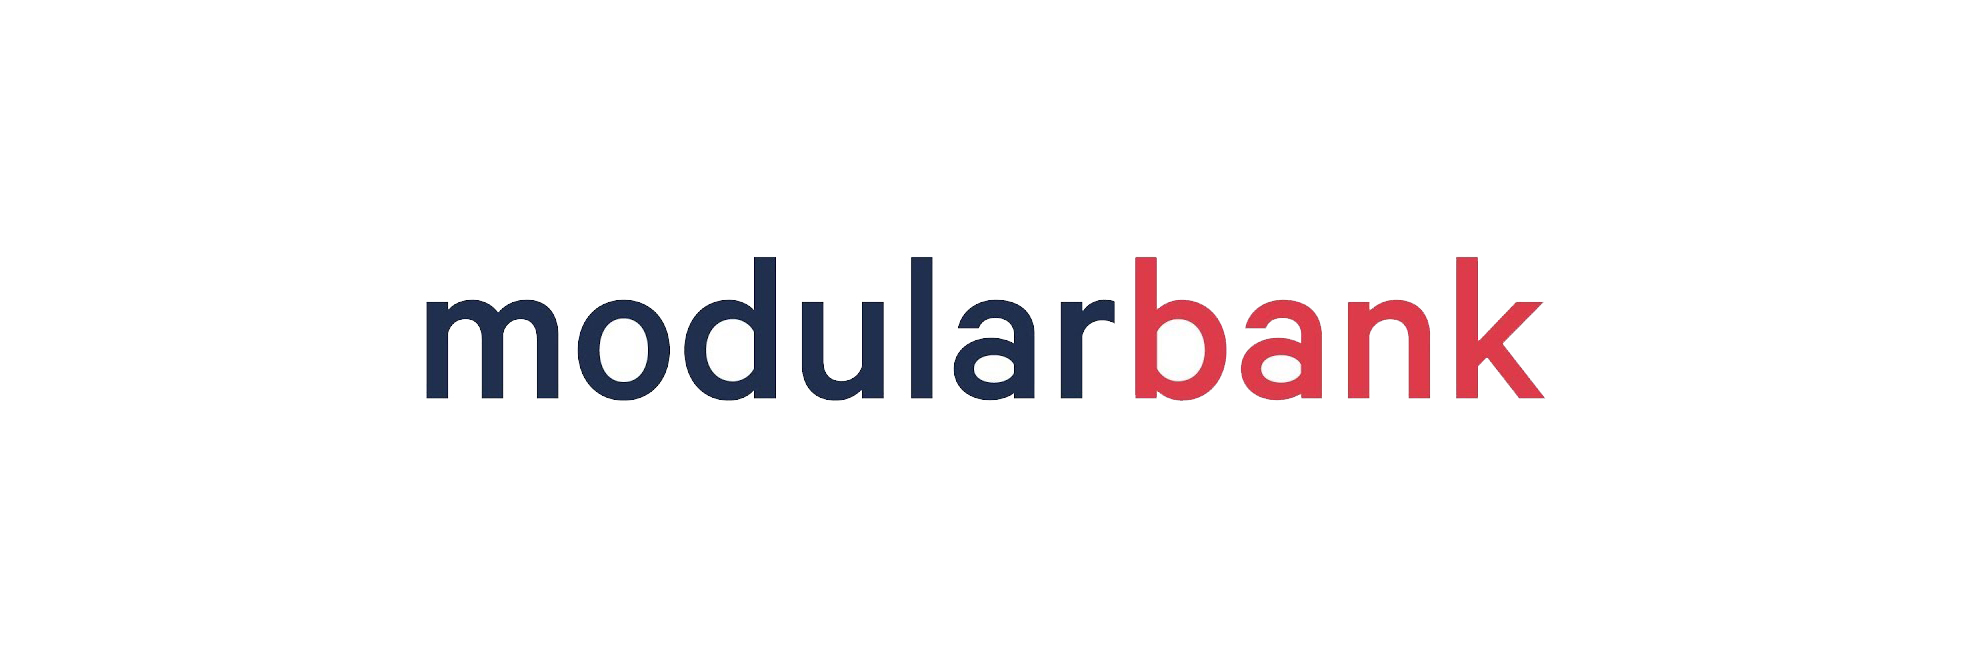 Modularbank Partners with HAWK:AI to Add AML Capabilities to Its Product Offering